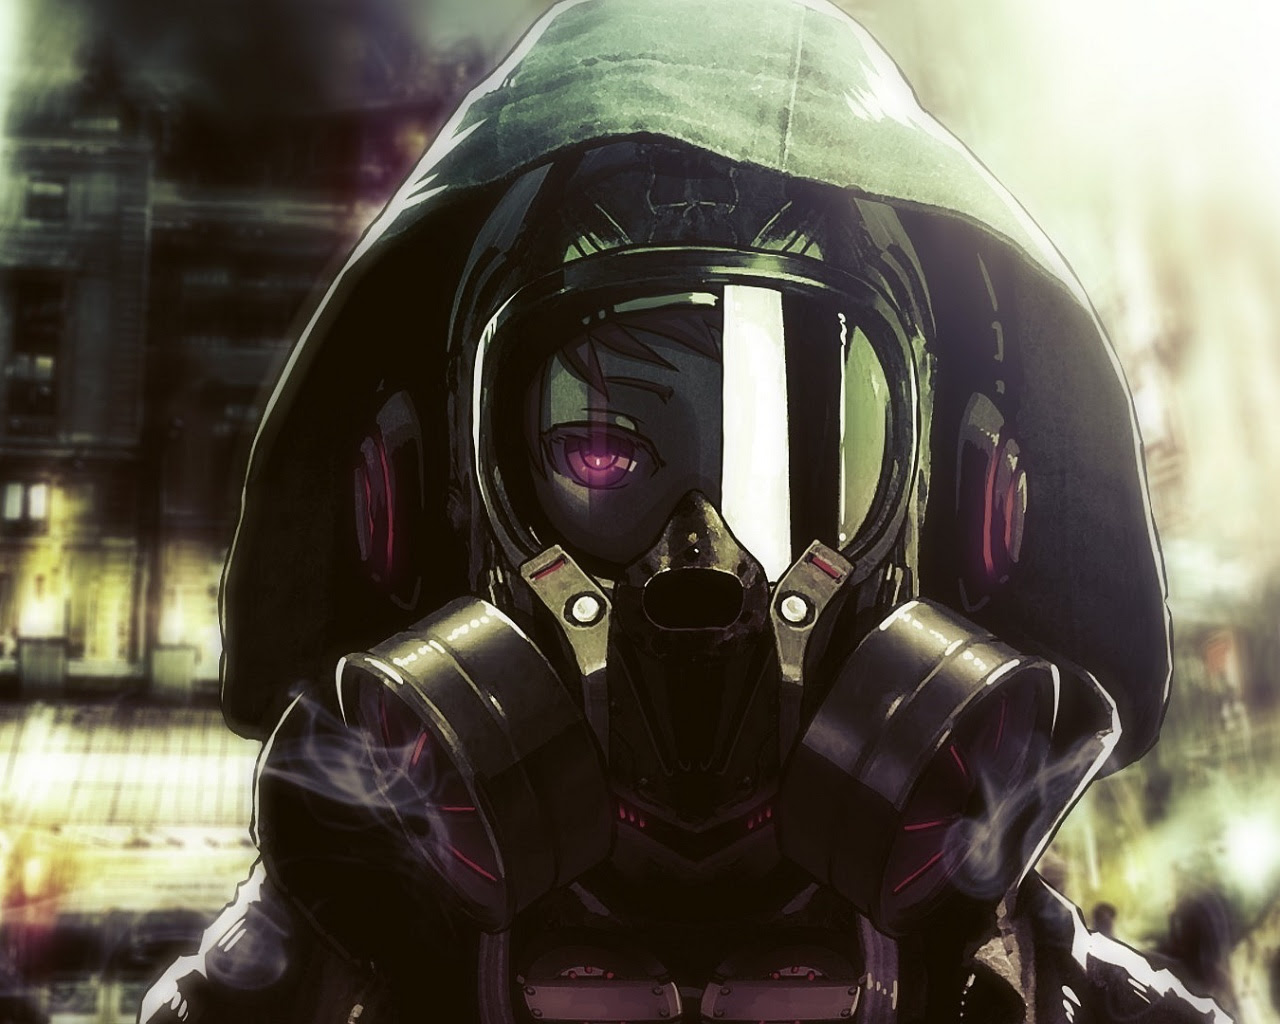 Awesome Mask Handsome Anime Boy Wallpaper